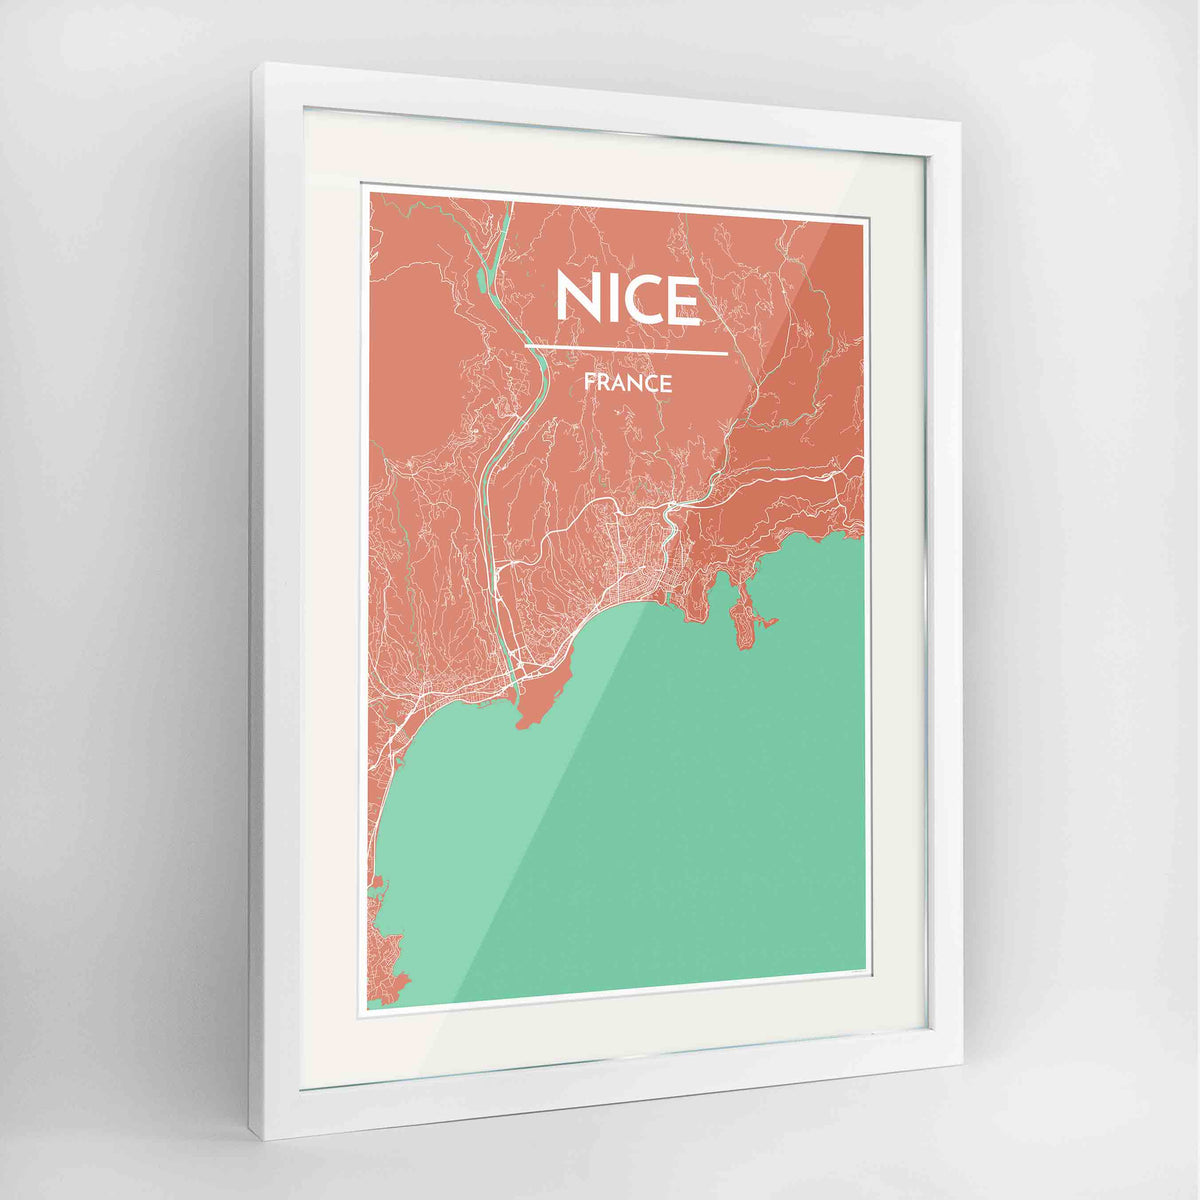 "Framed Nice Map Art Print 24x36"" Contemporary White frame Point Two Design Group"